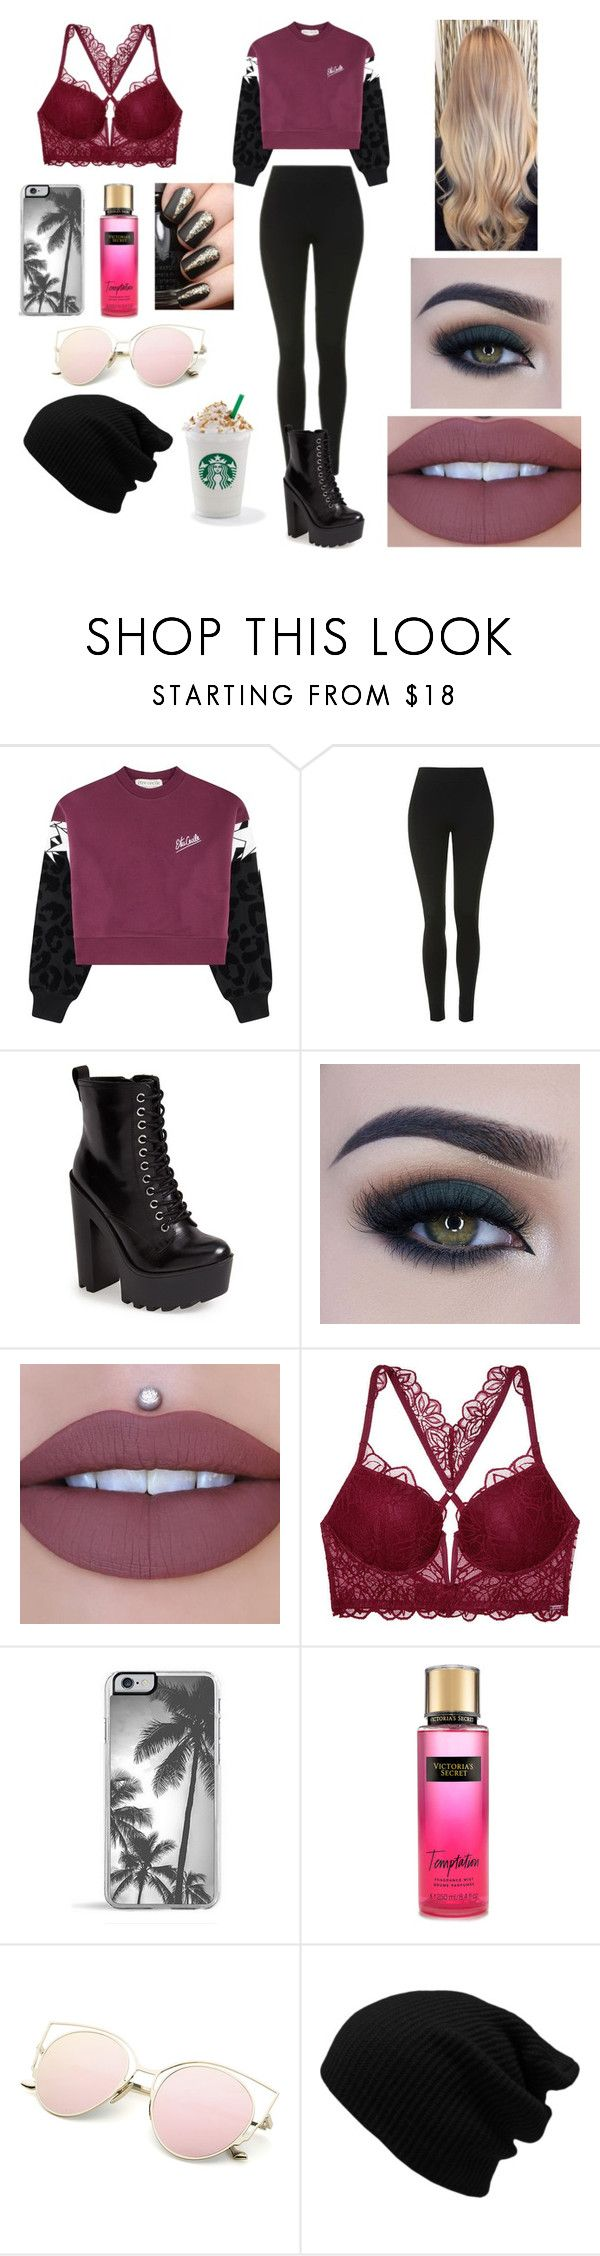 """""""Untitled #723"""" by tahoegirl ❤ liked on Polyvore featuring Être Cécile, Topshop, Steve Madden, Too Faced Cosmetics, Jeffree Star and Victoria's Secret"""